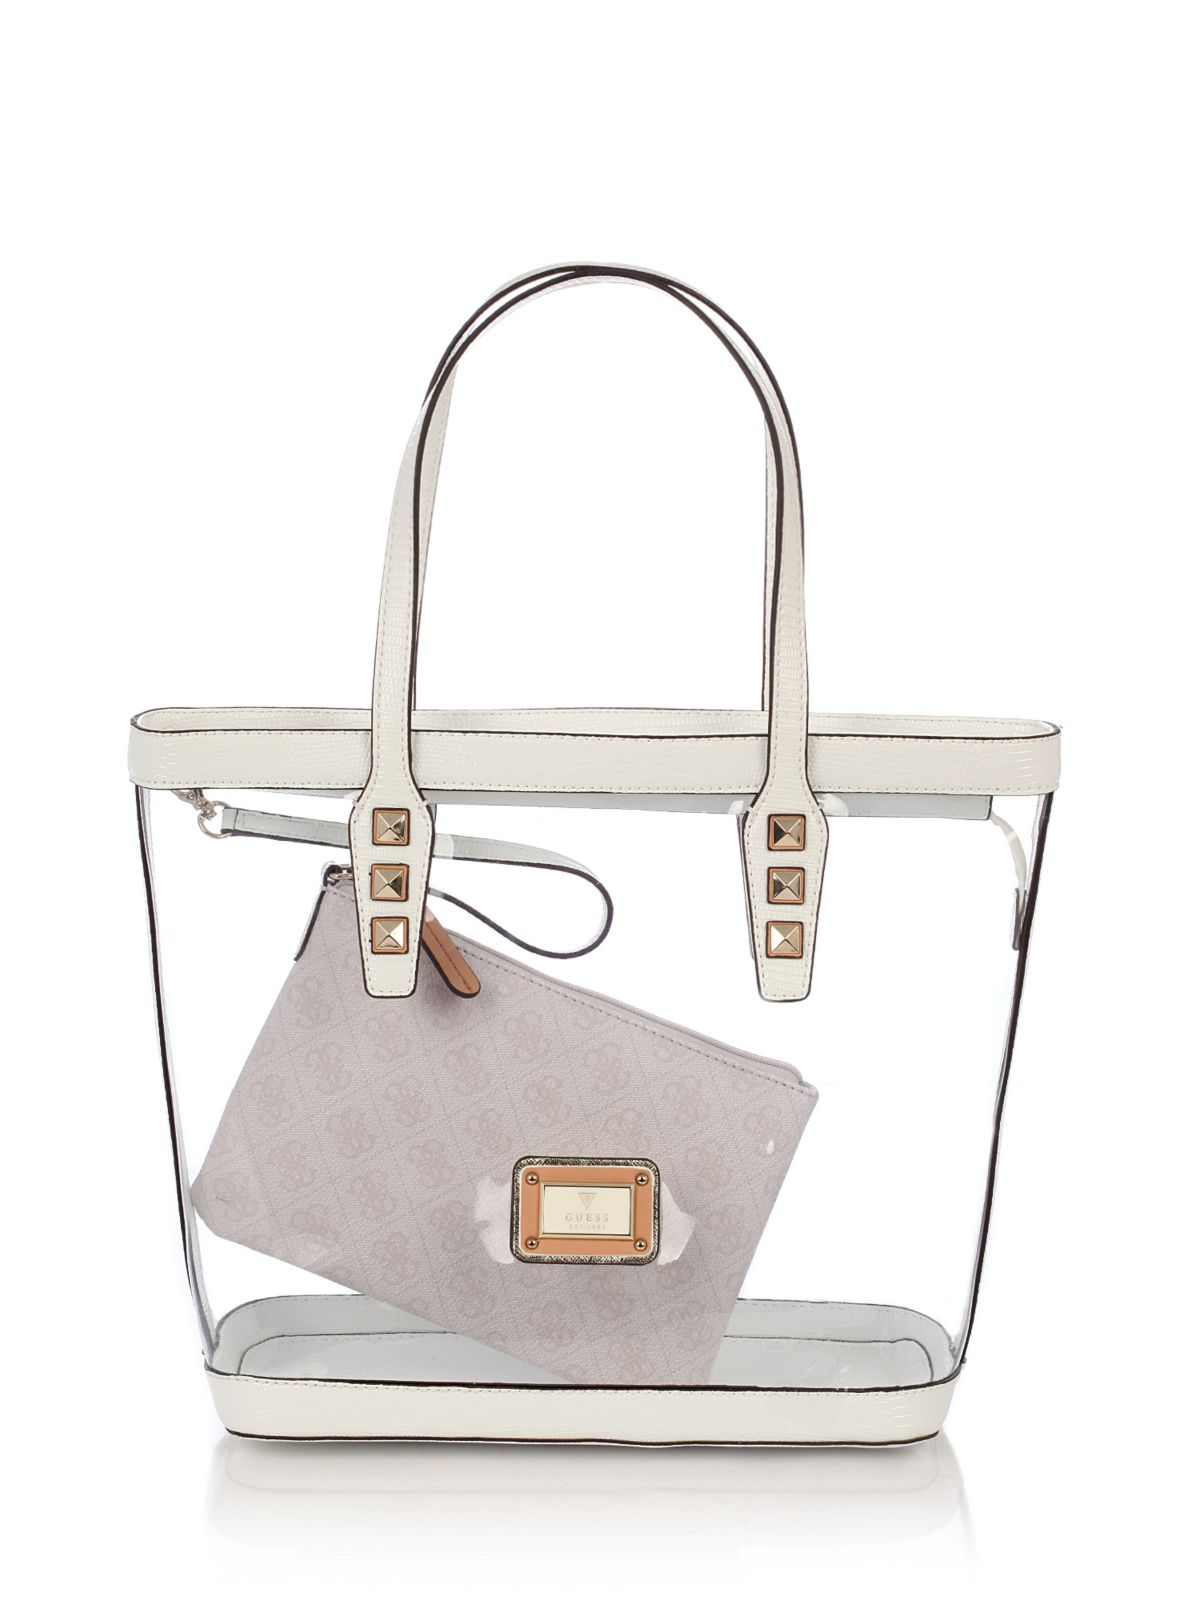 Guess Logo Remix Clear Plastic Tote Bag In Transparent